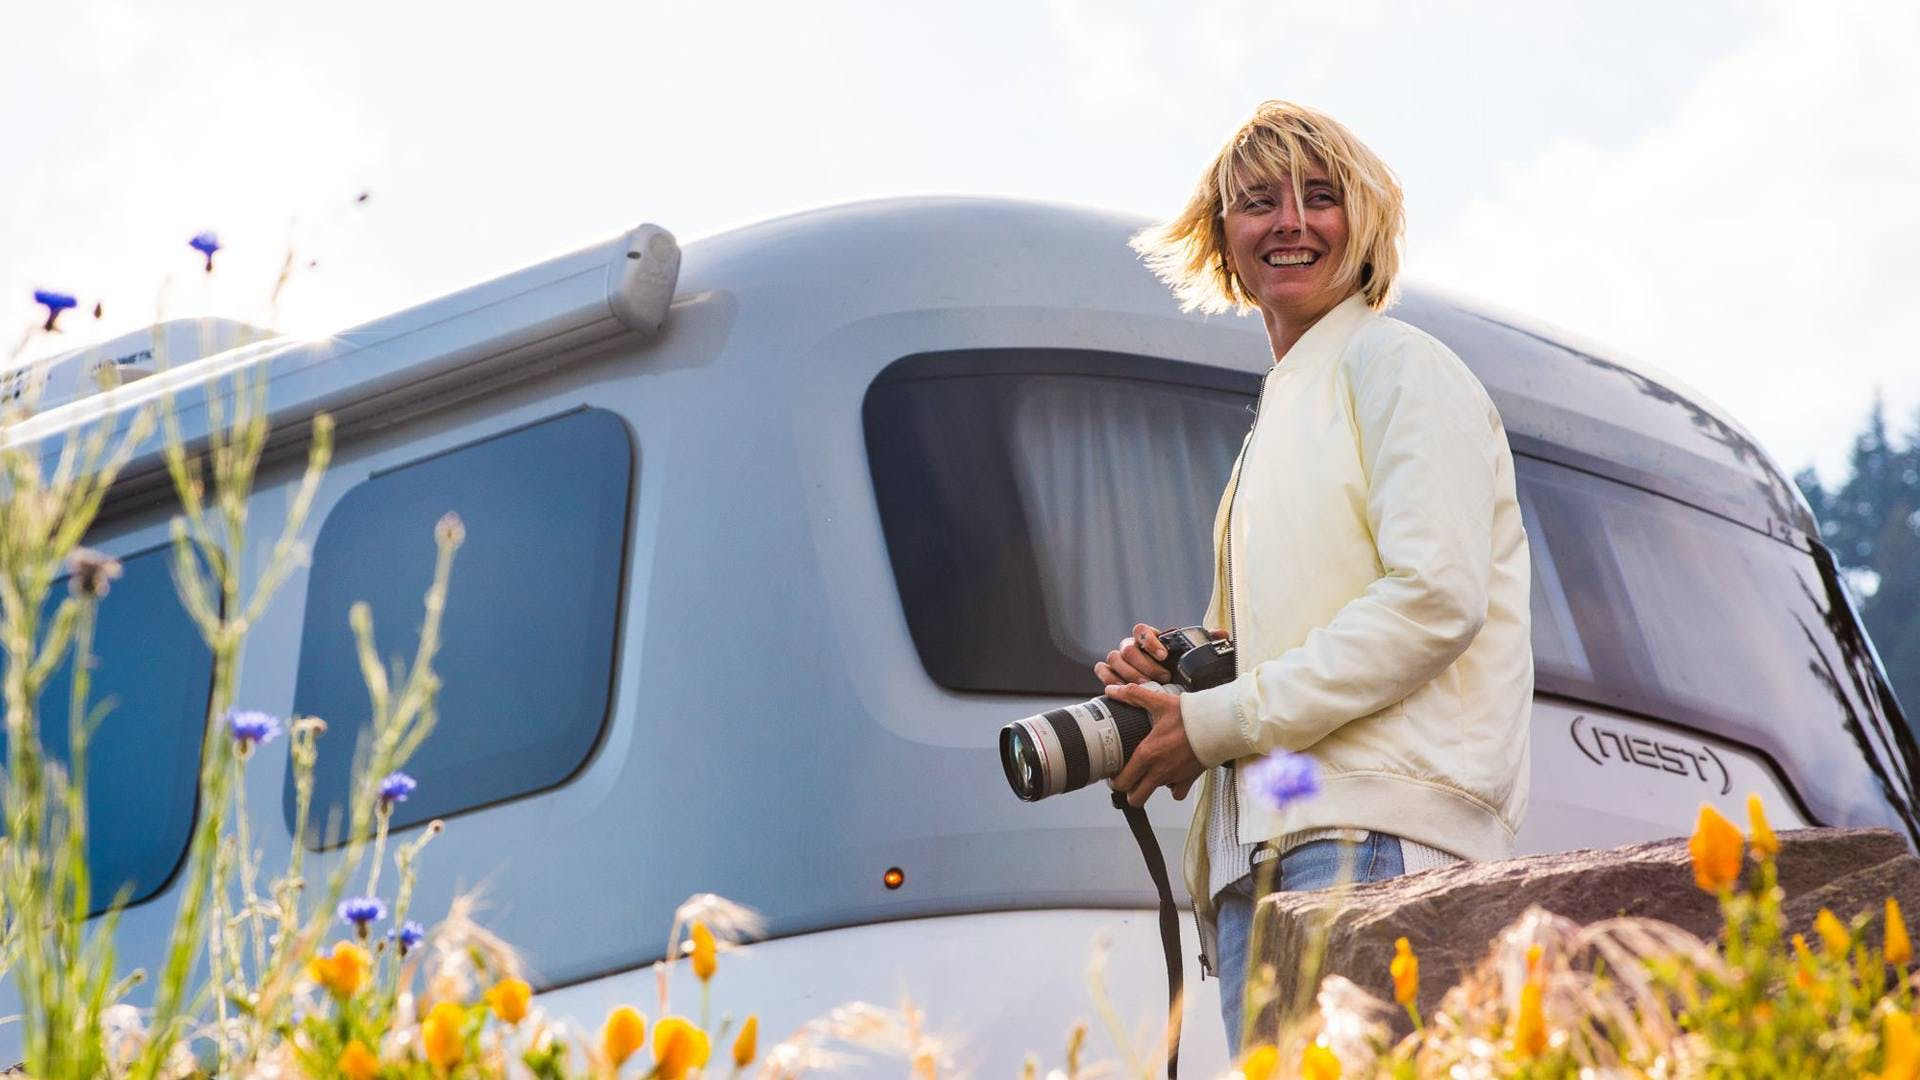 Laura Austin flowers Airstream Travel Trailer Nest